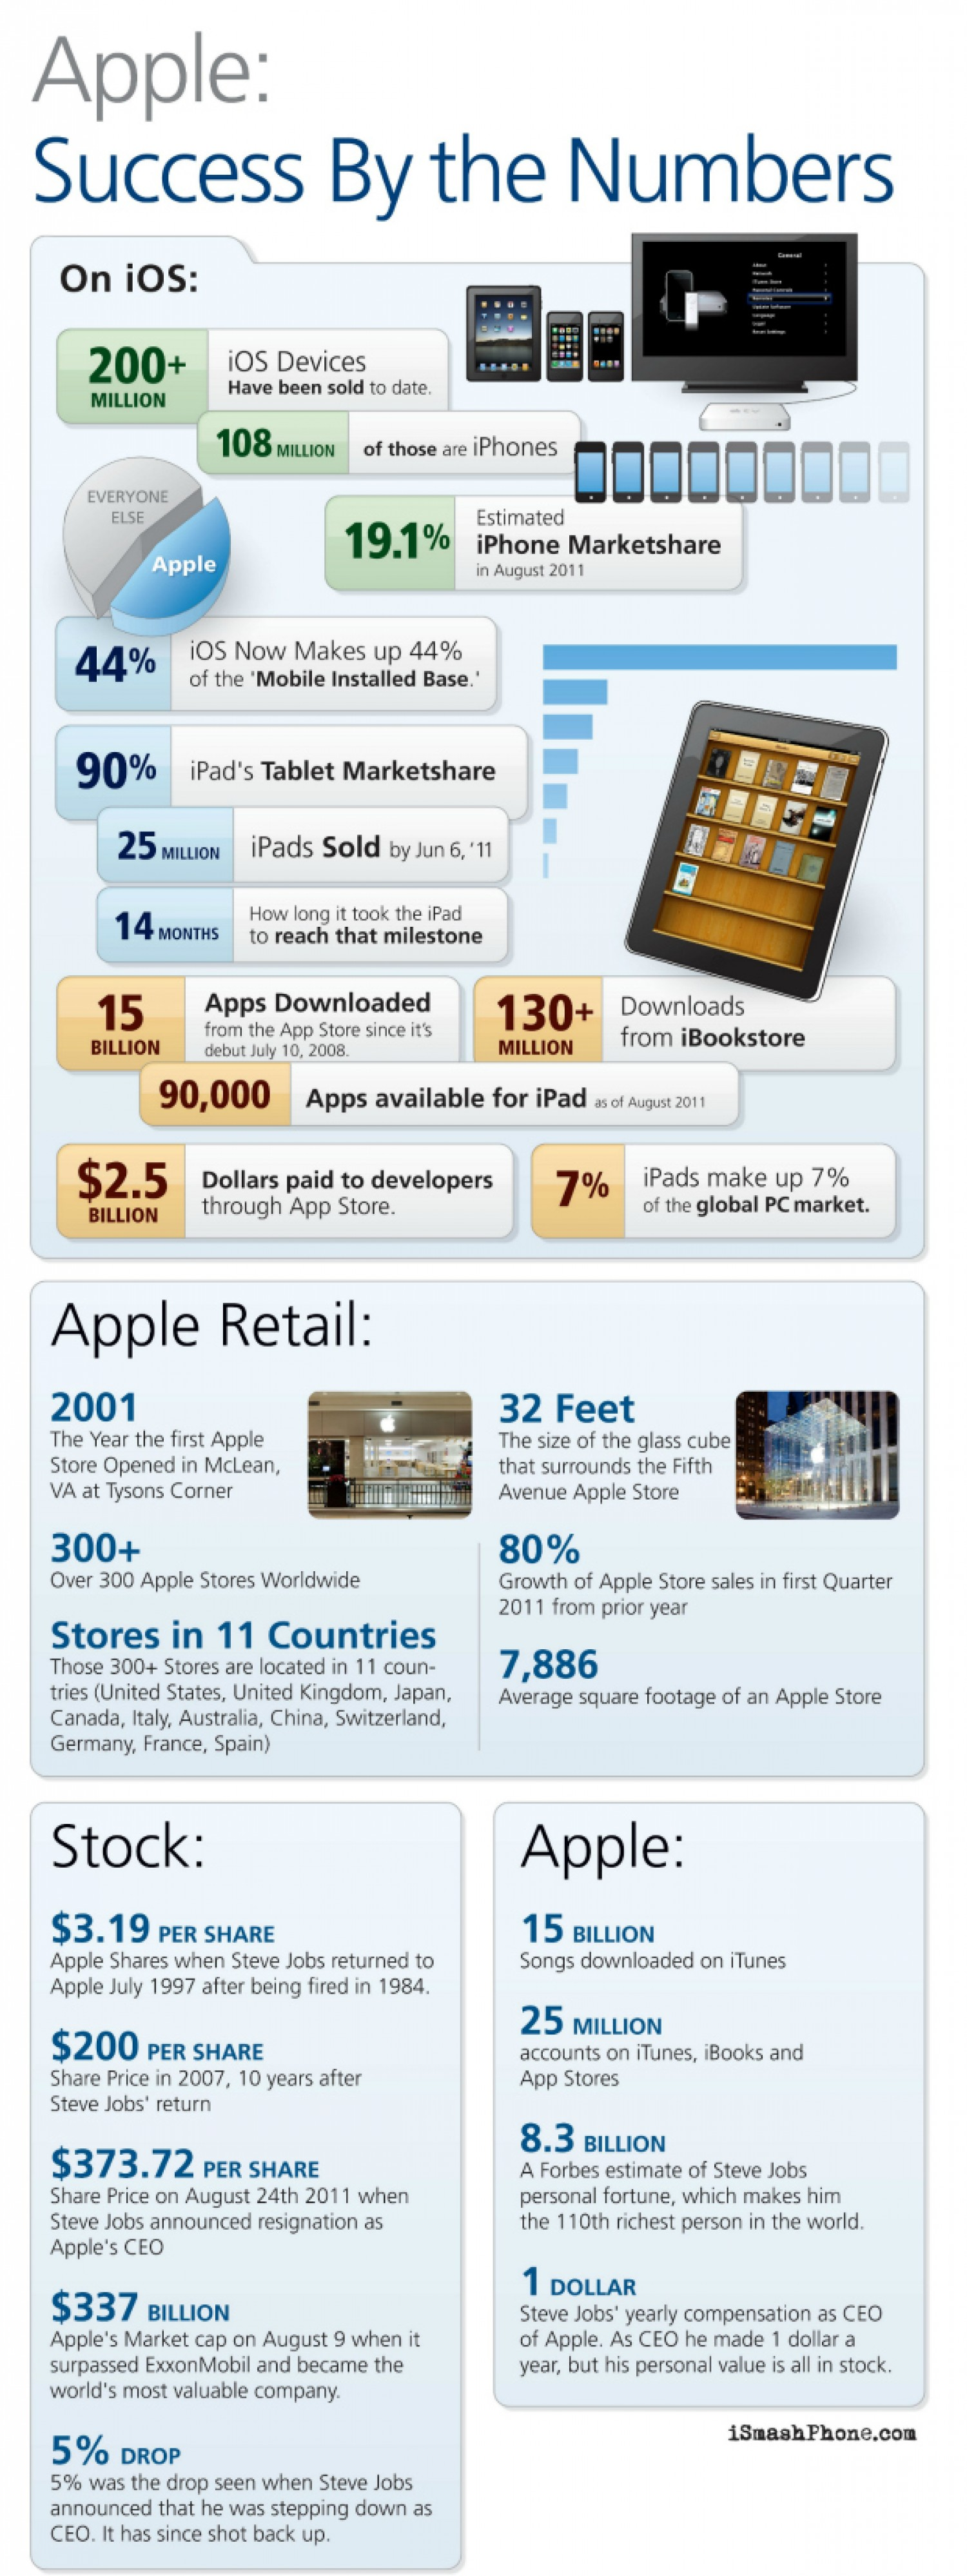 7. Apple success by the numbers